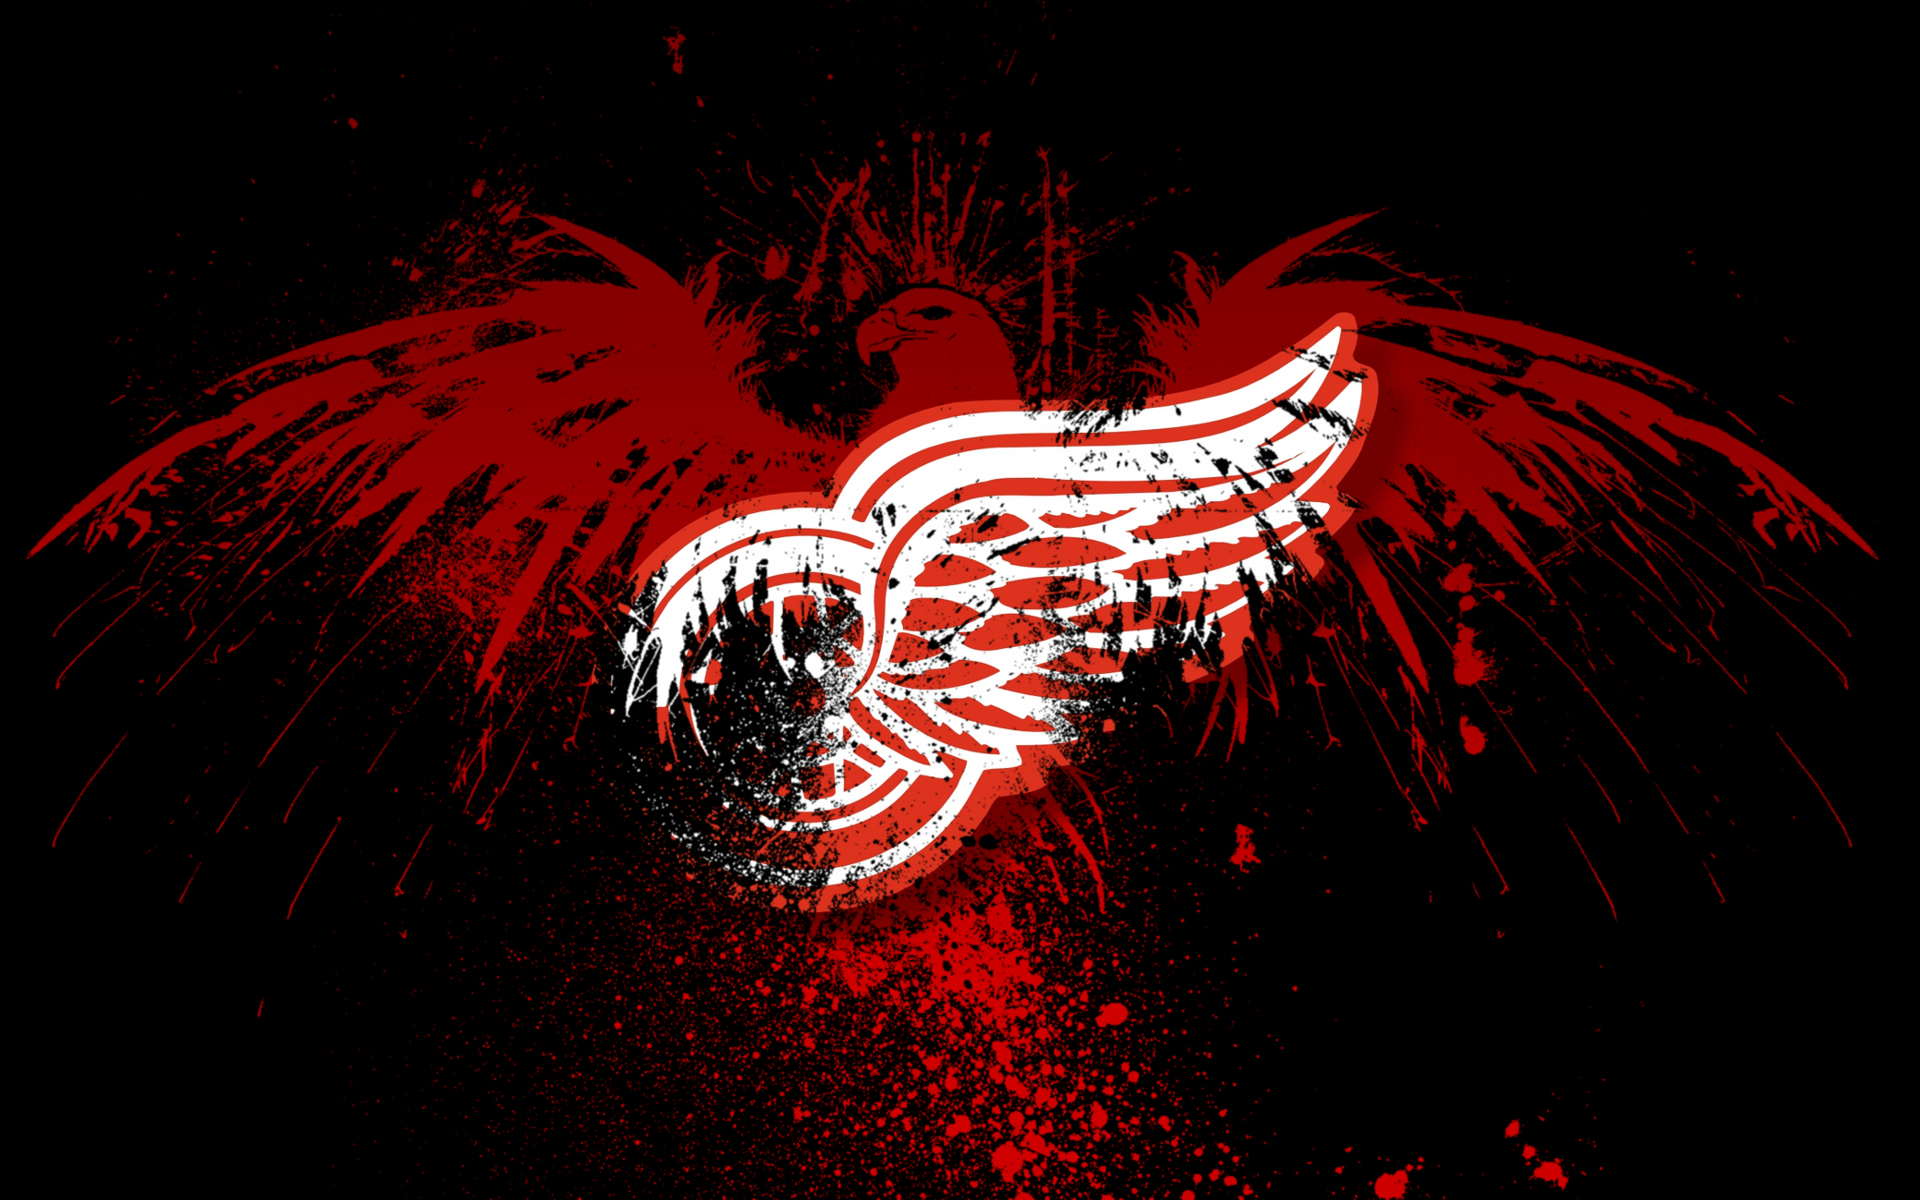 red wings RW bird HD Wallpaper